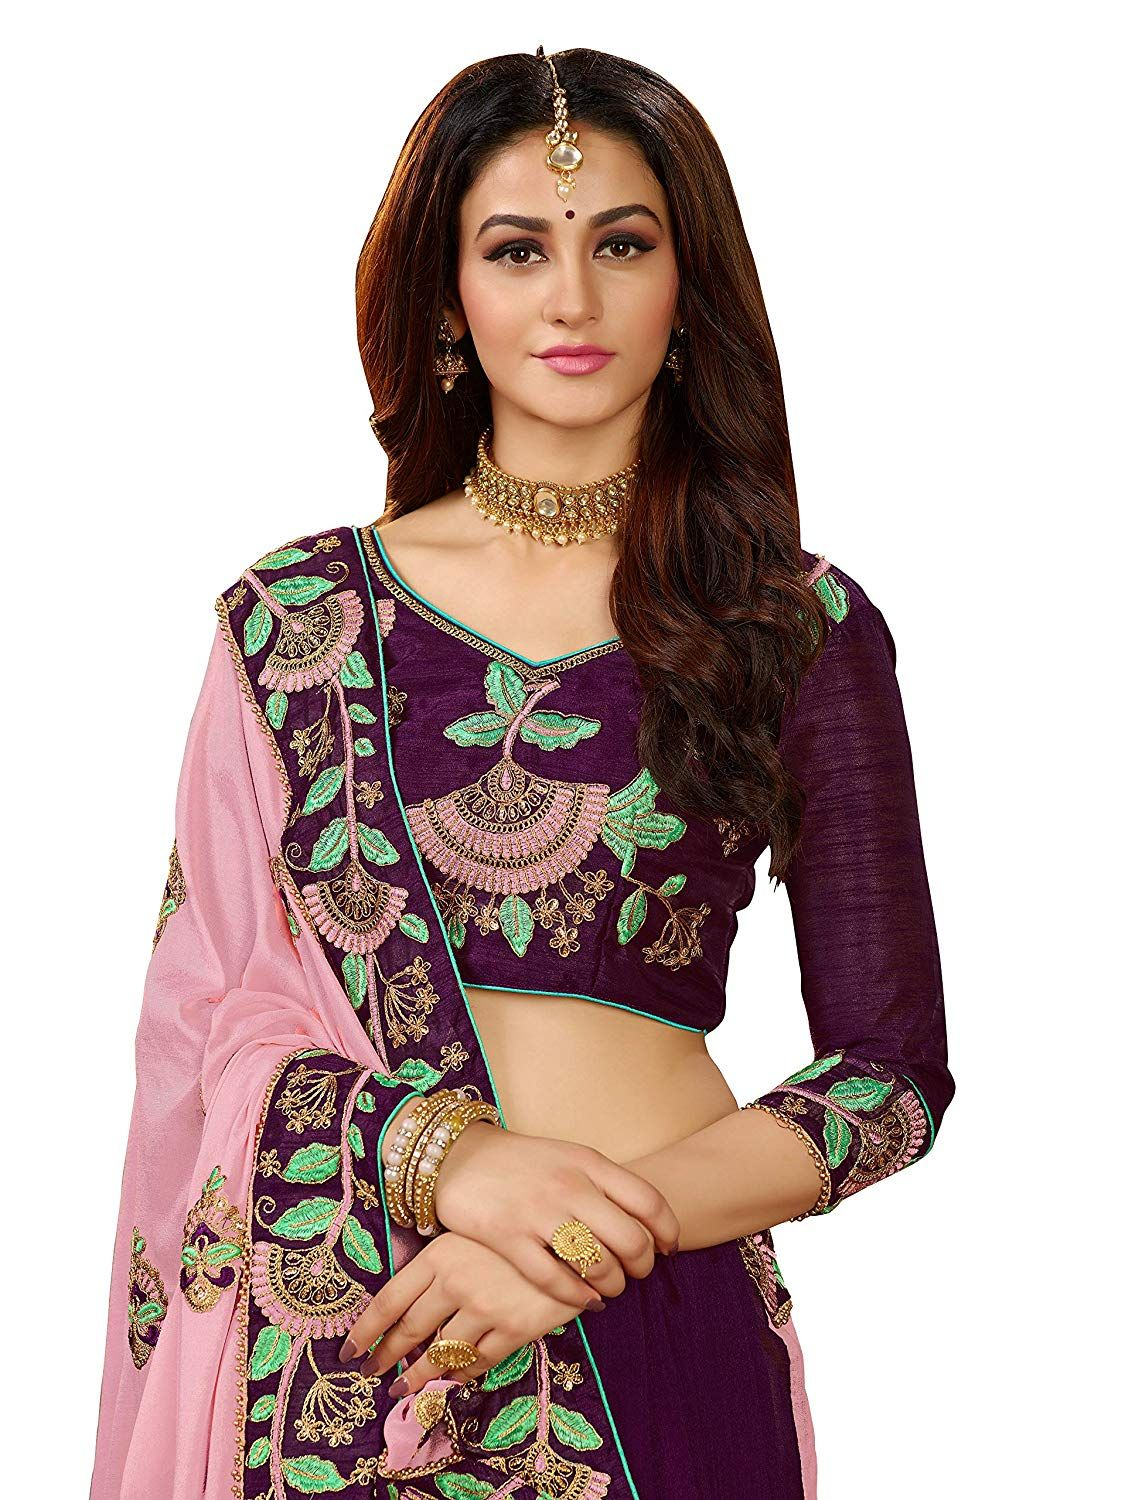 fe960aac86 Manohari Pink Silk Blends Embroidered Saree with Blouse: Amazon.in:  Clothing & Accessories